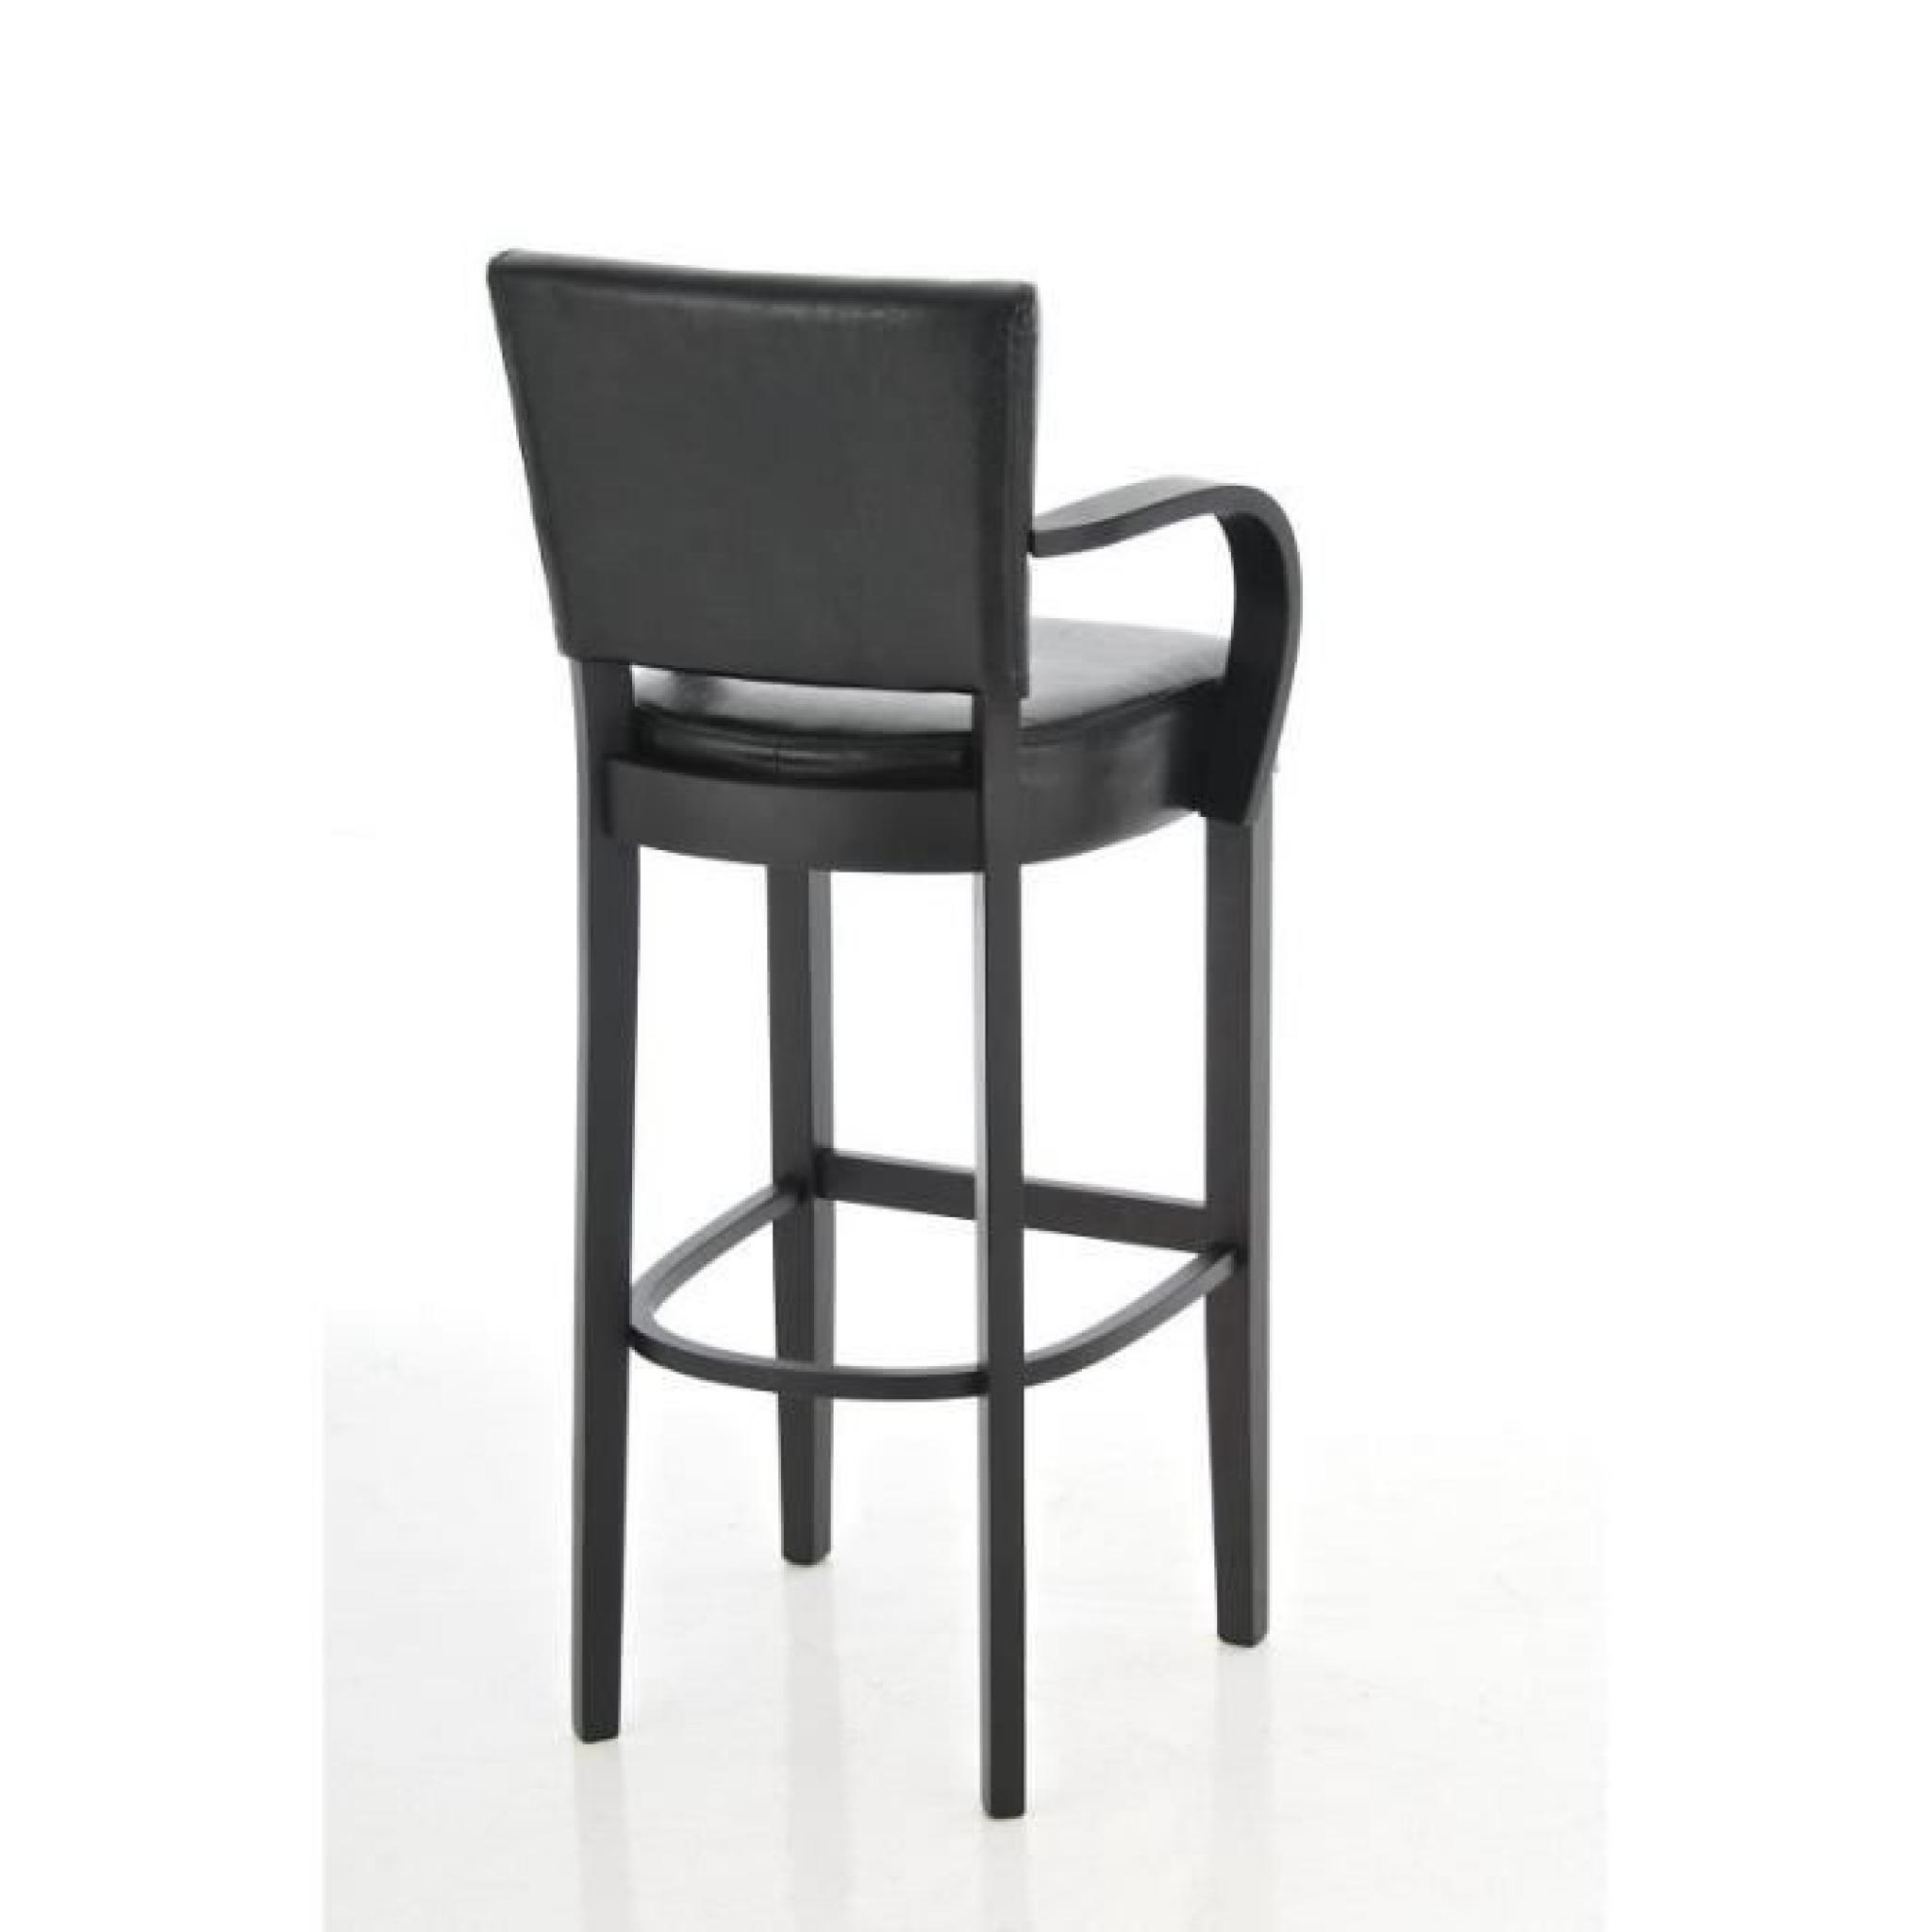 clp tabouret de bar ethel en bois avec accoudoirs 13. Black Bedroom Furniture Sets. Home Design Ideas